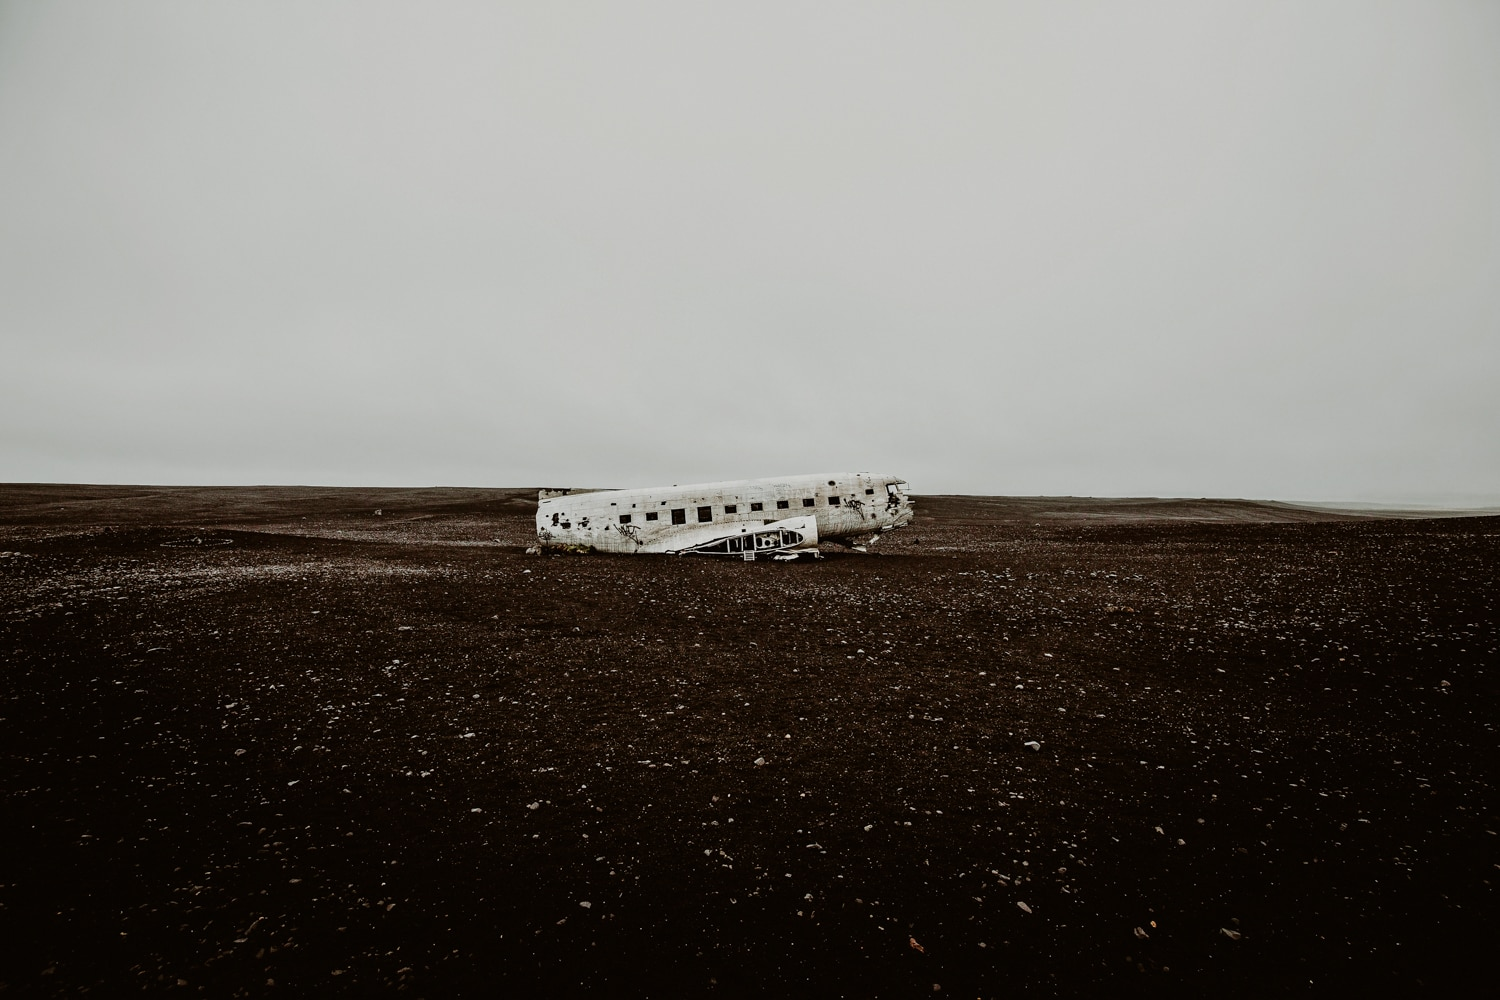 Plane crash in Iceland.